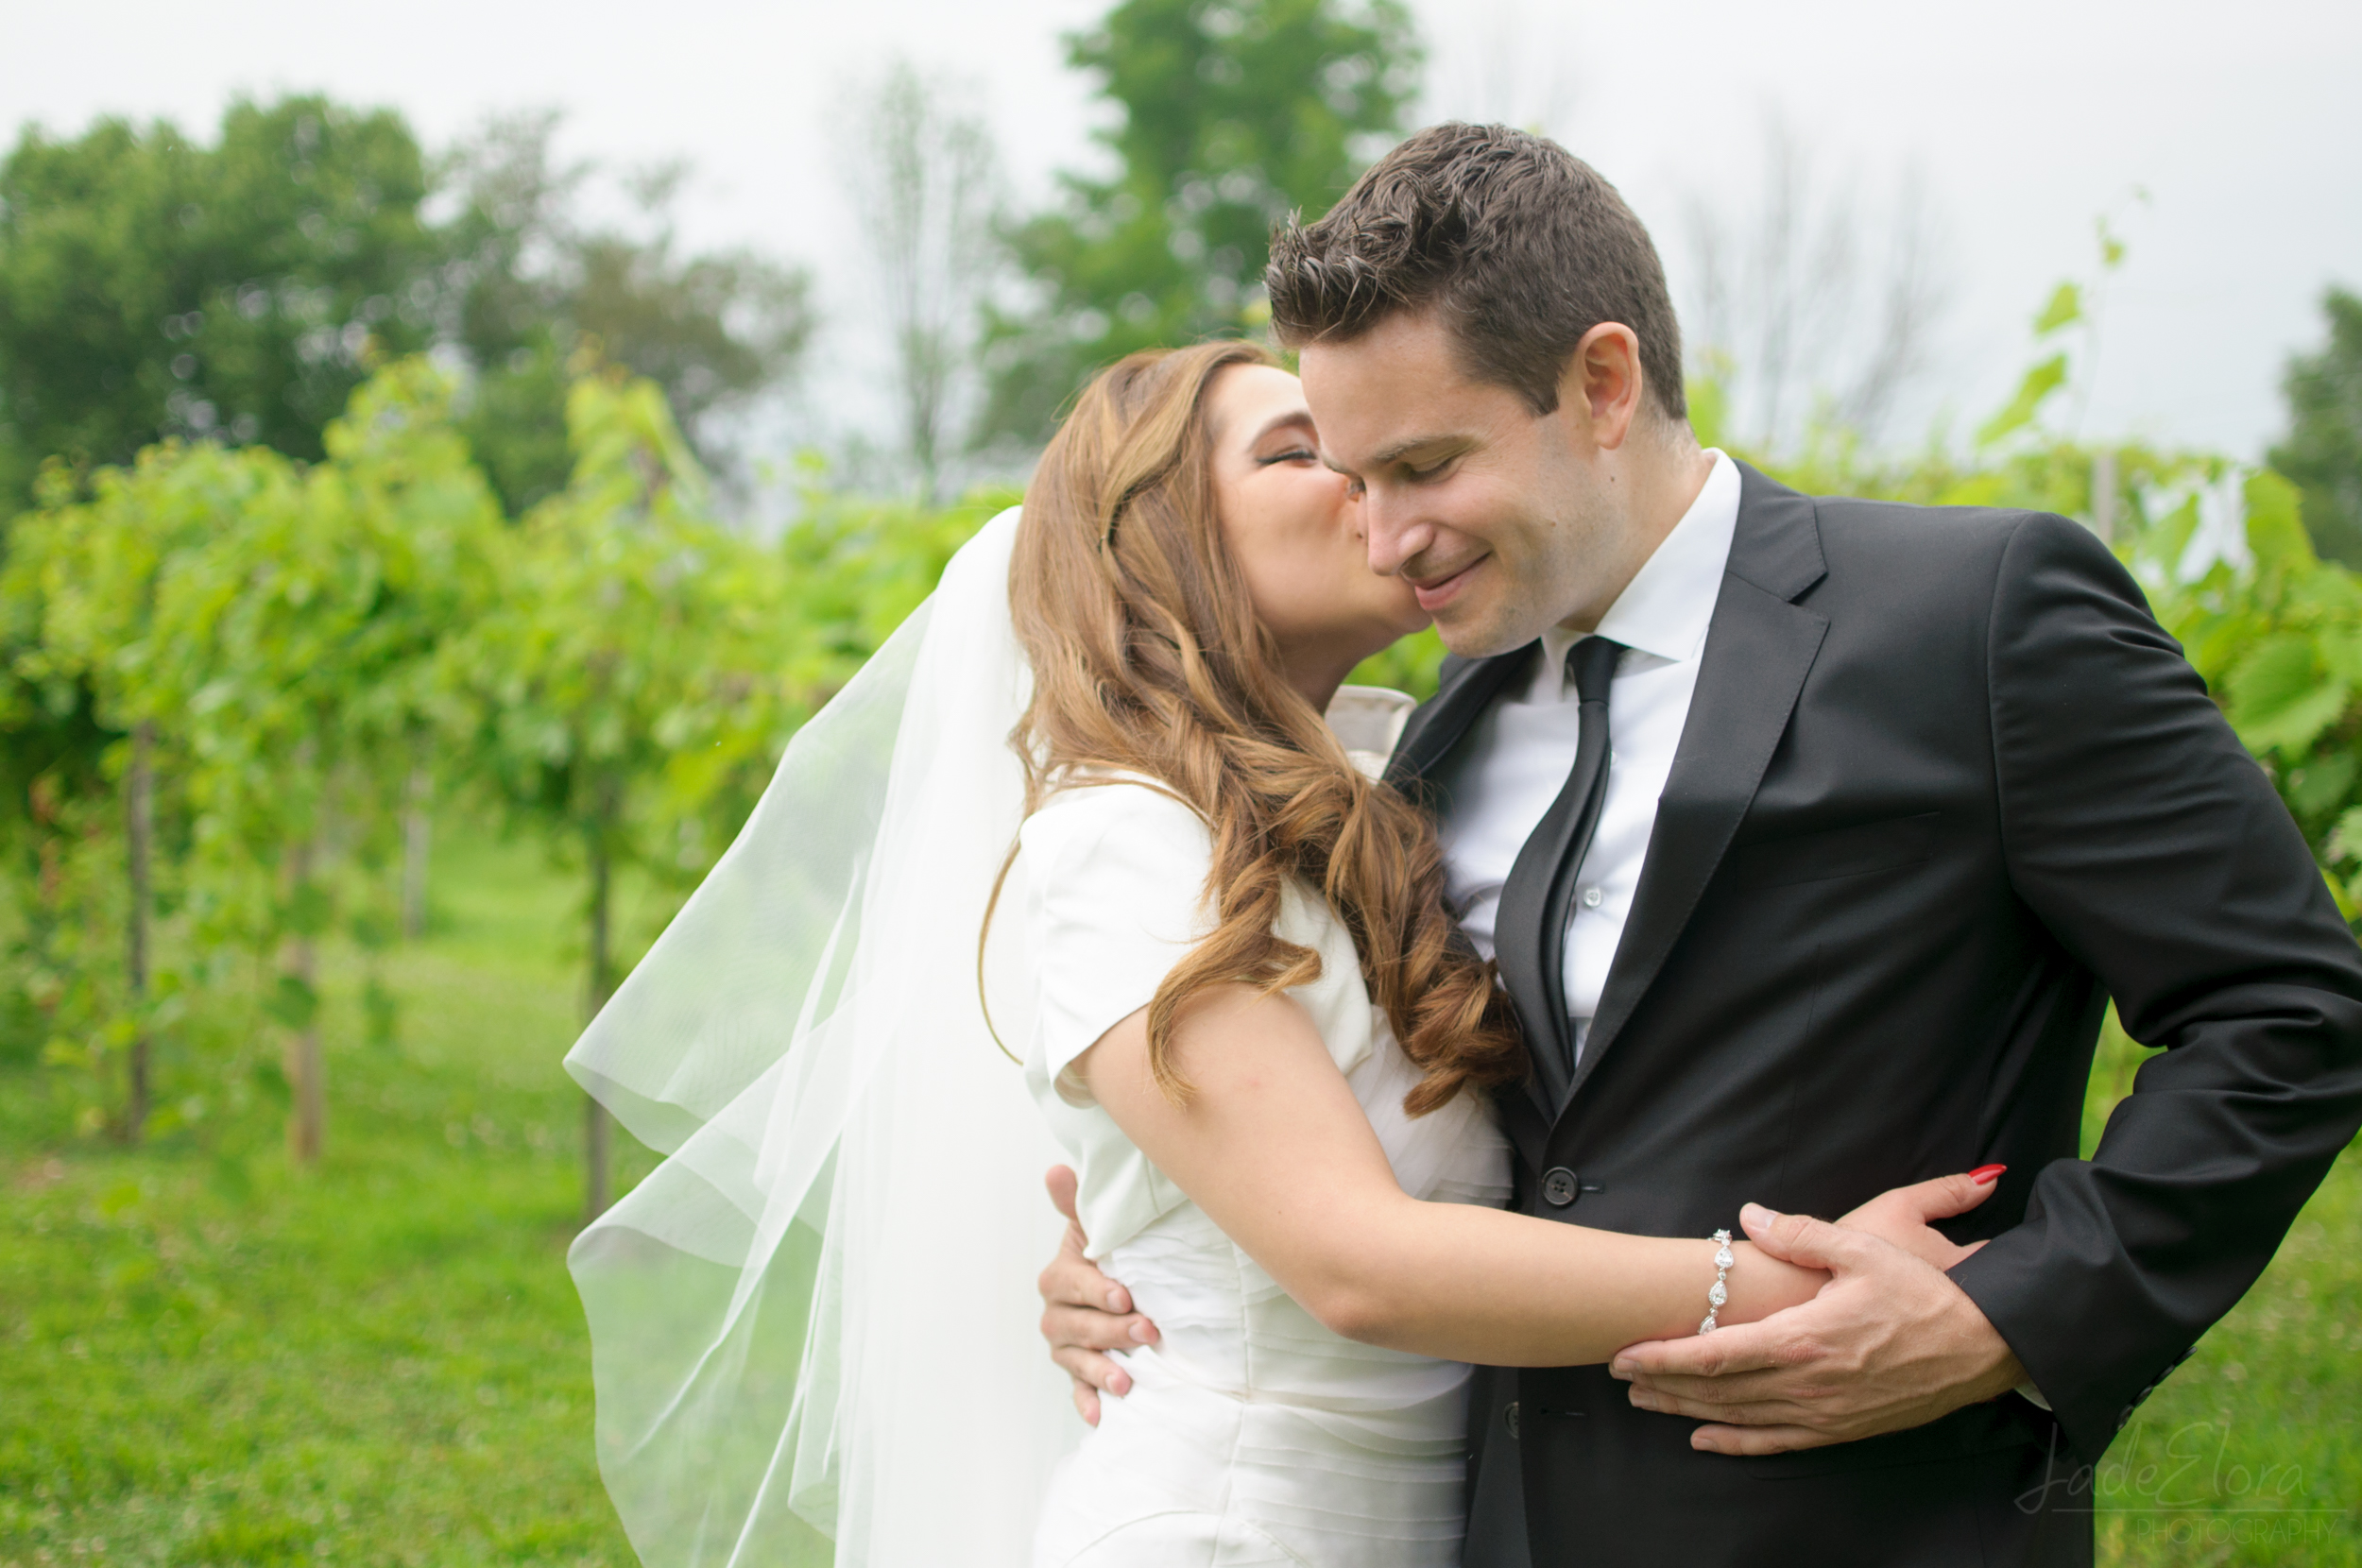 Cute Kiss Wedding Photo Vineyard